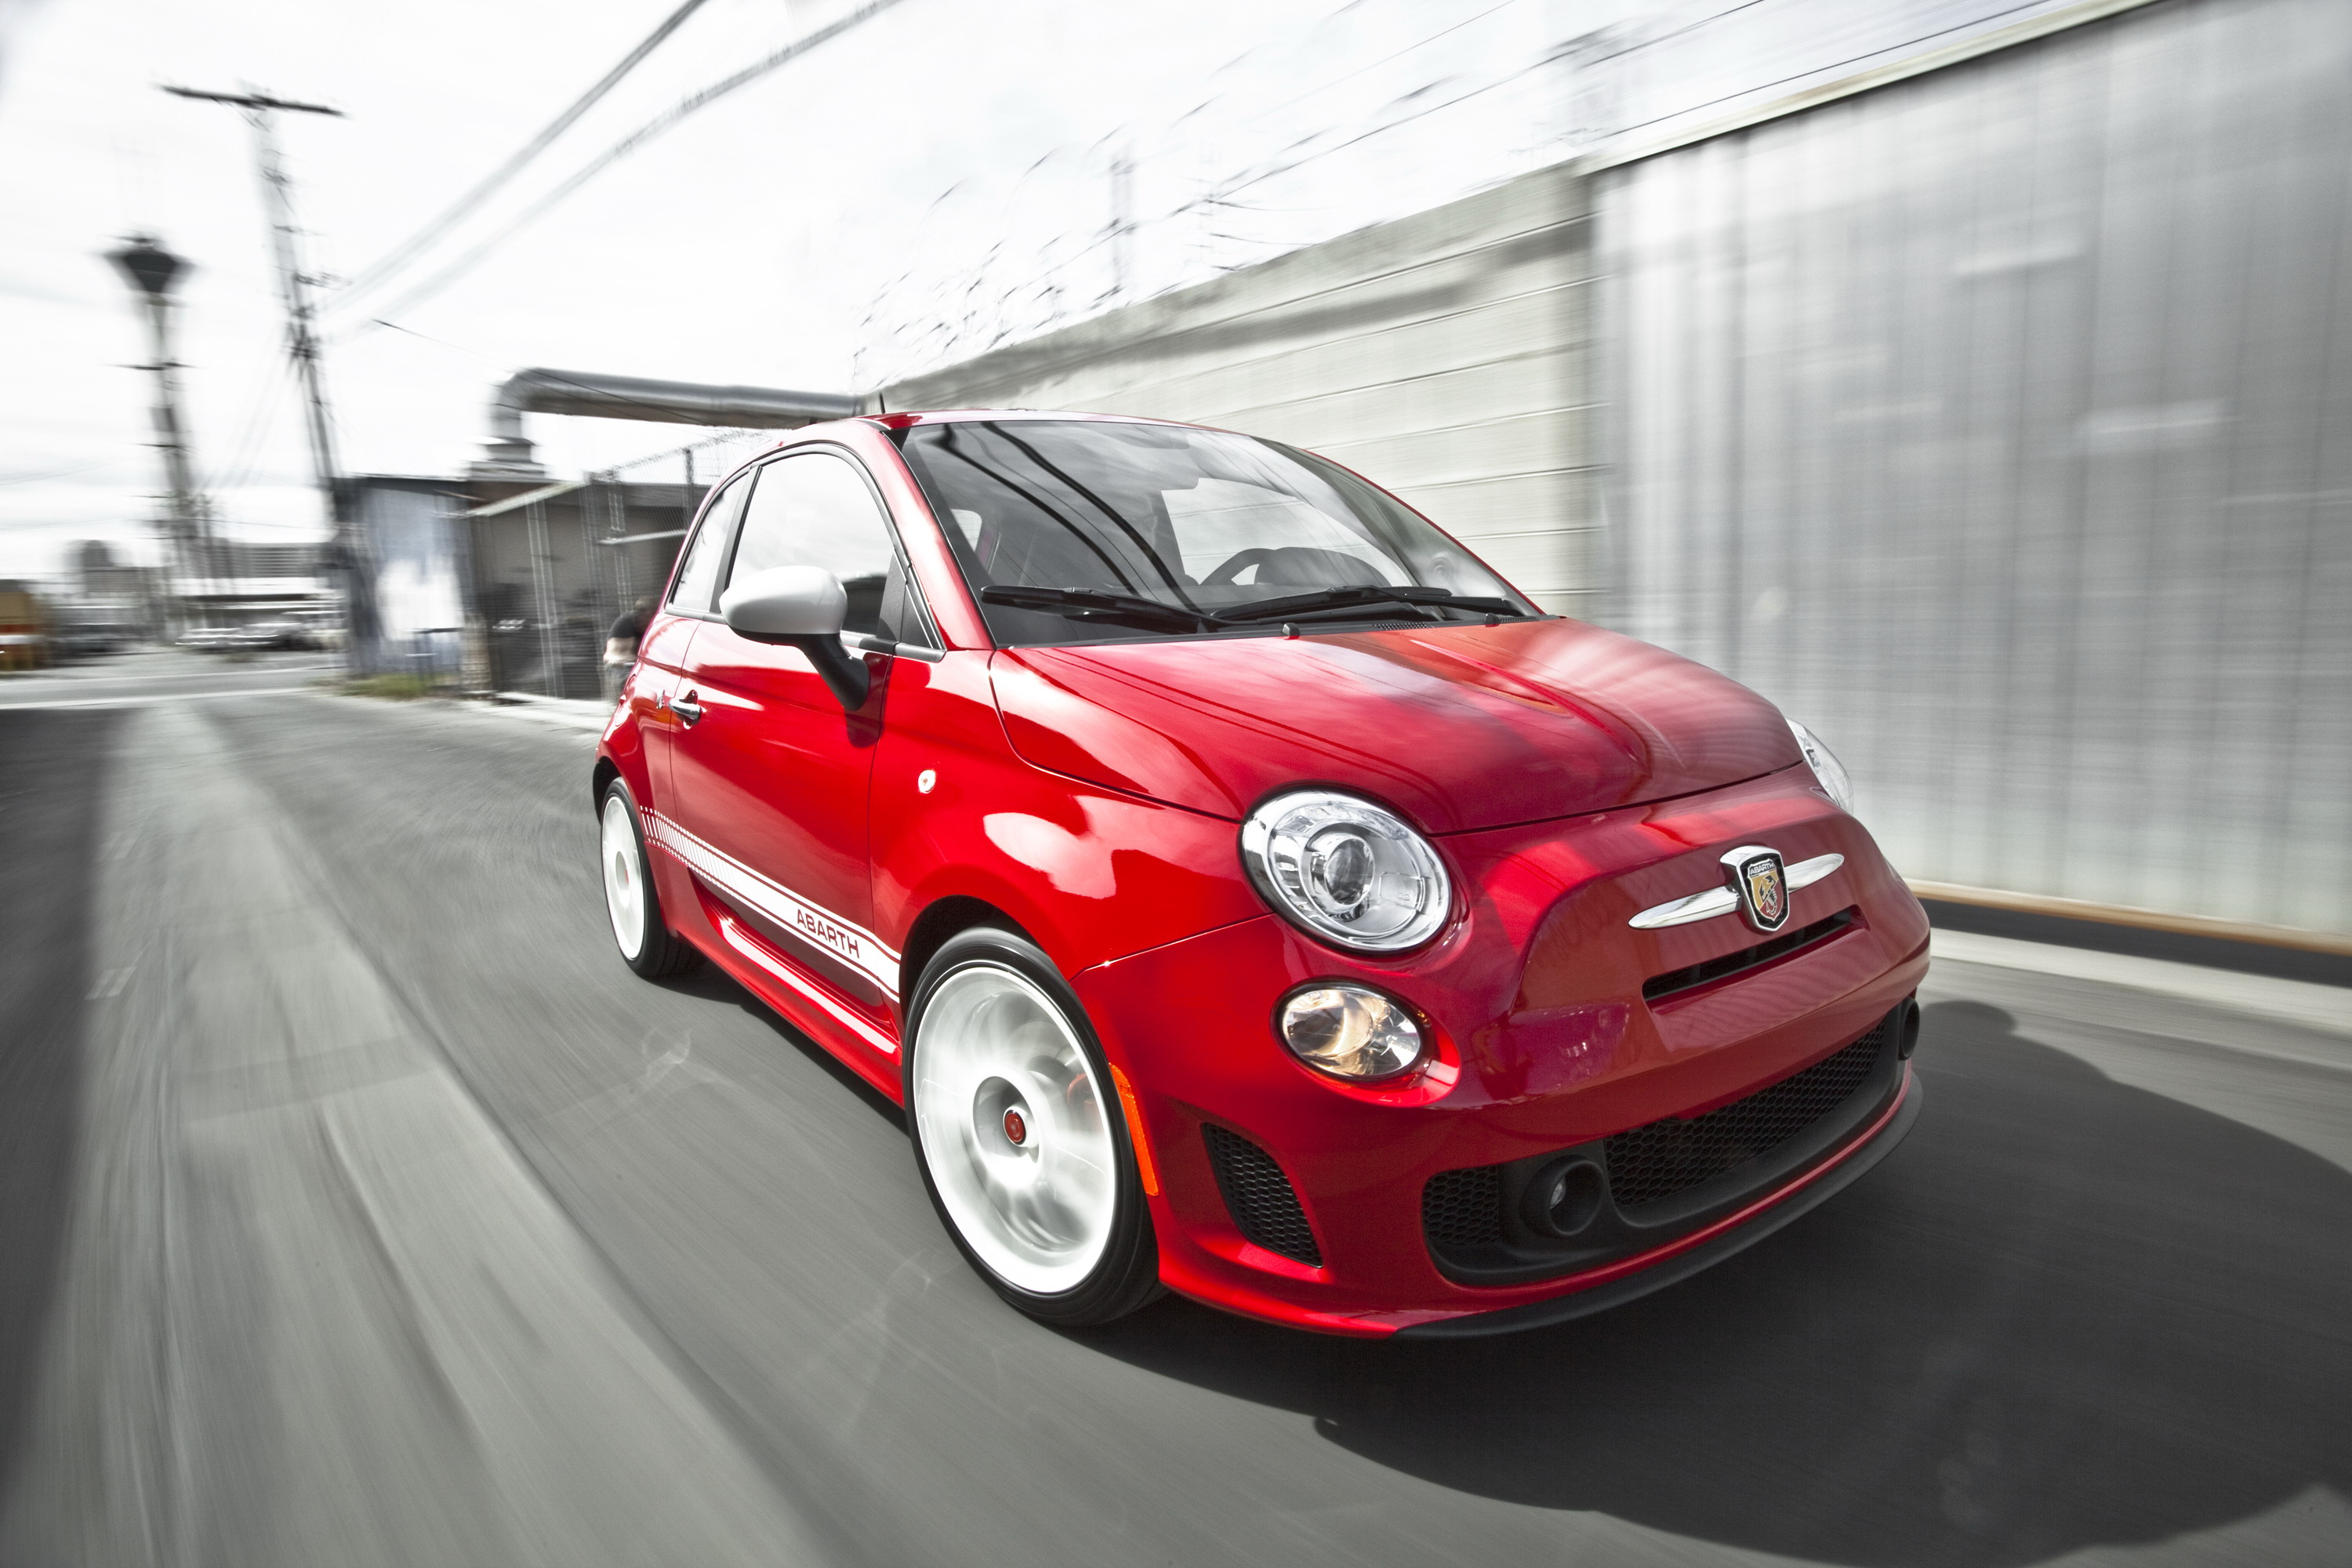 2015 fiat 500 abarth review - top speed